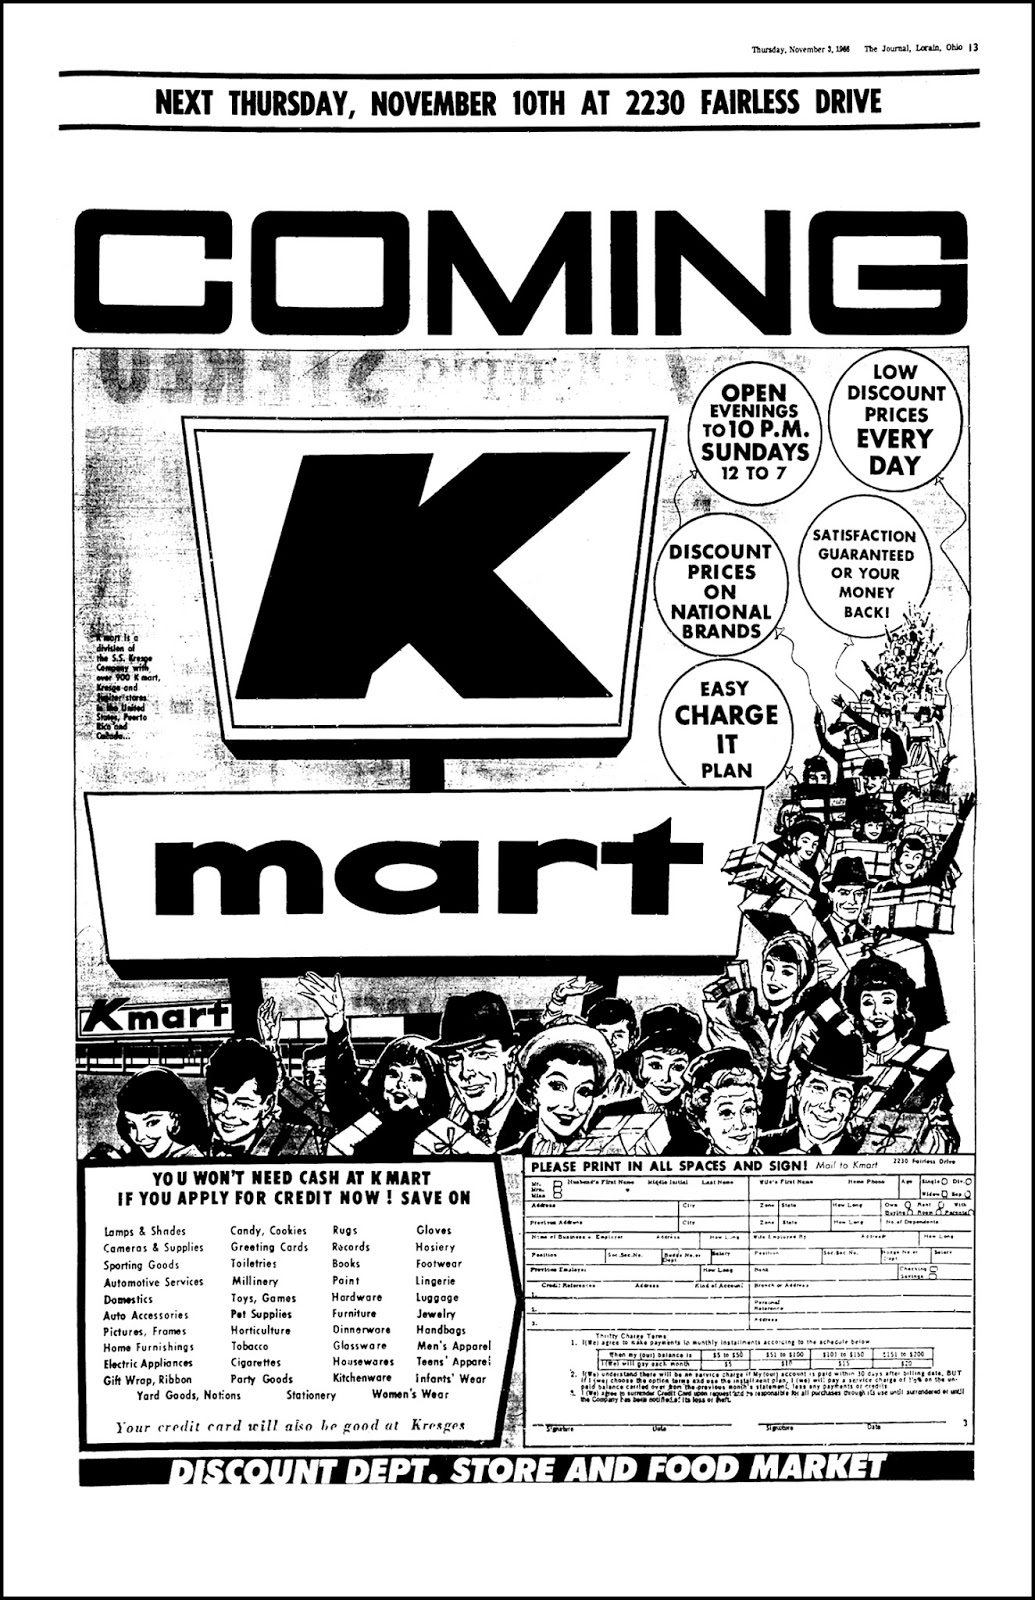 Kmart is owned by Sears Holding Corp, which announced closures to more than 1 00 Kmart and Sears stores this year. In the '90s, there were more than 90 Kmart SuperCenters. Five of the remaining.